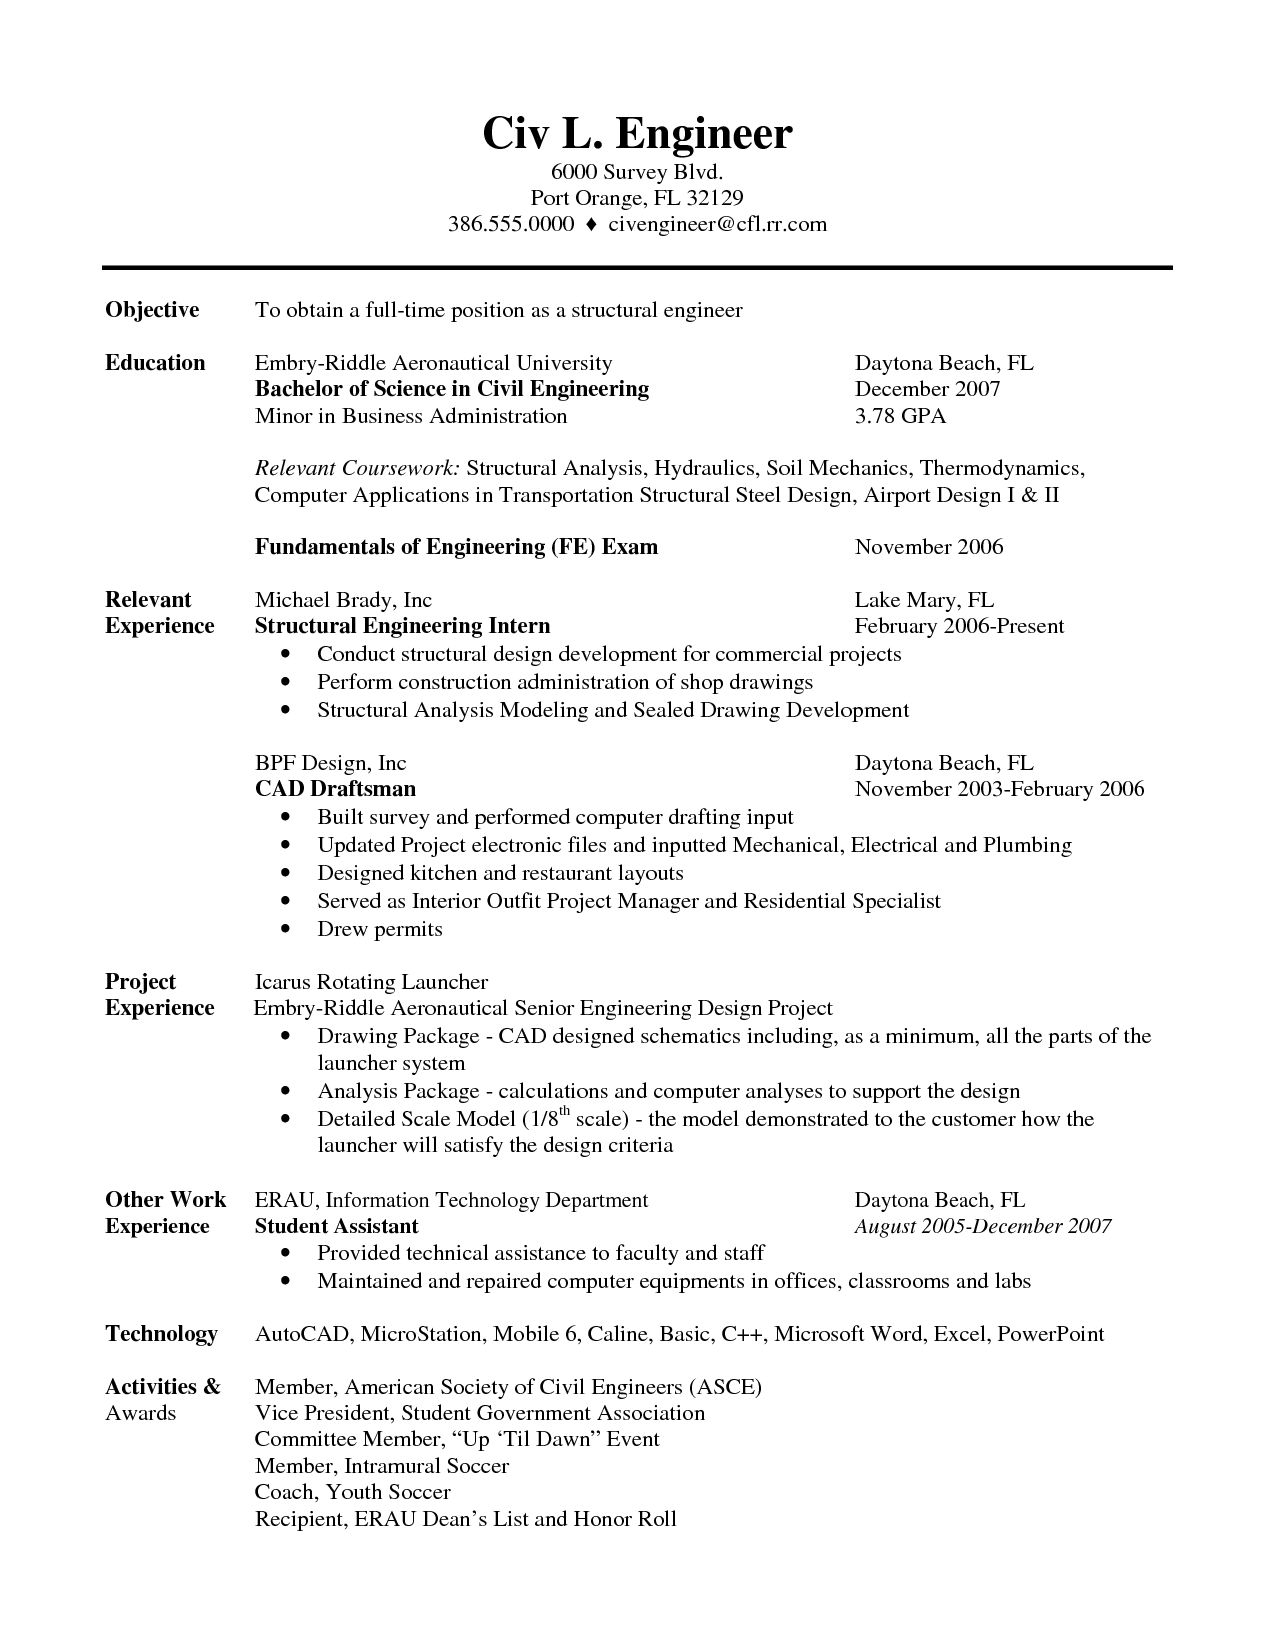 Civil Engineer Sample Resume Hector Best Sample Civil Engineer Resume